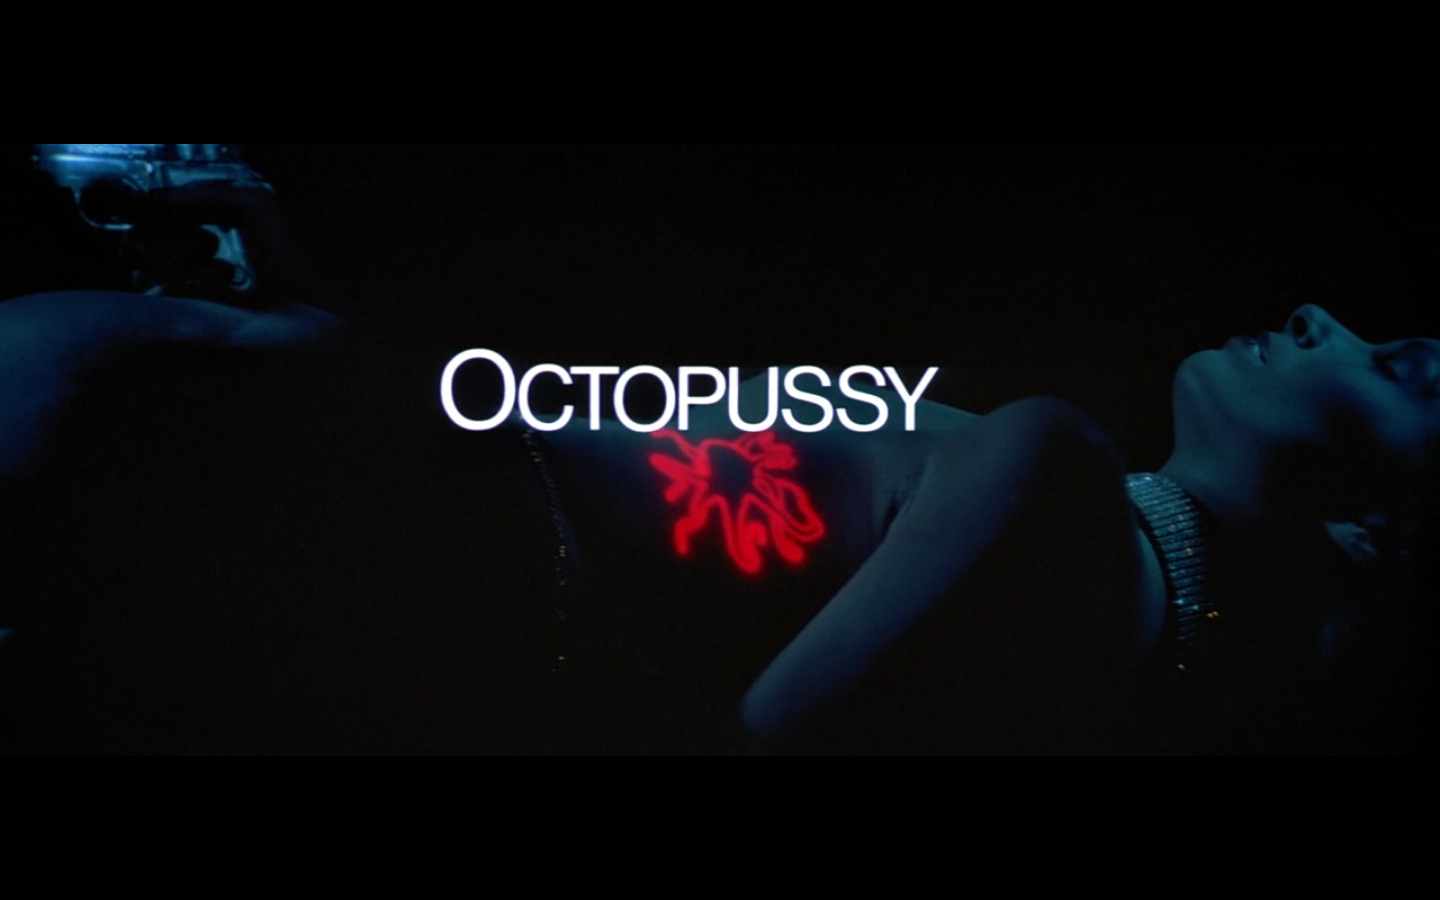 octopussy-title-card